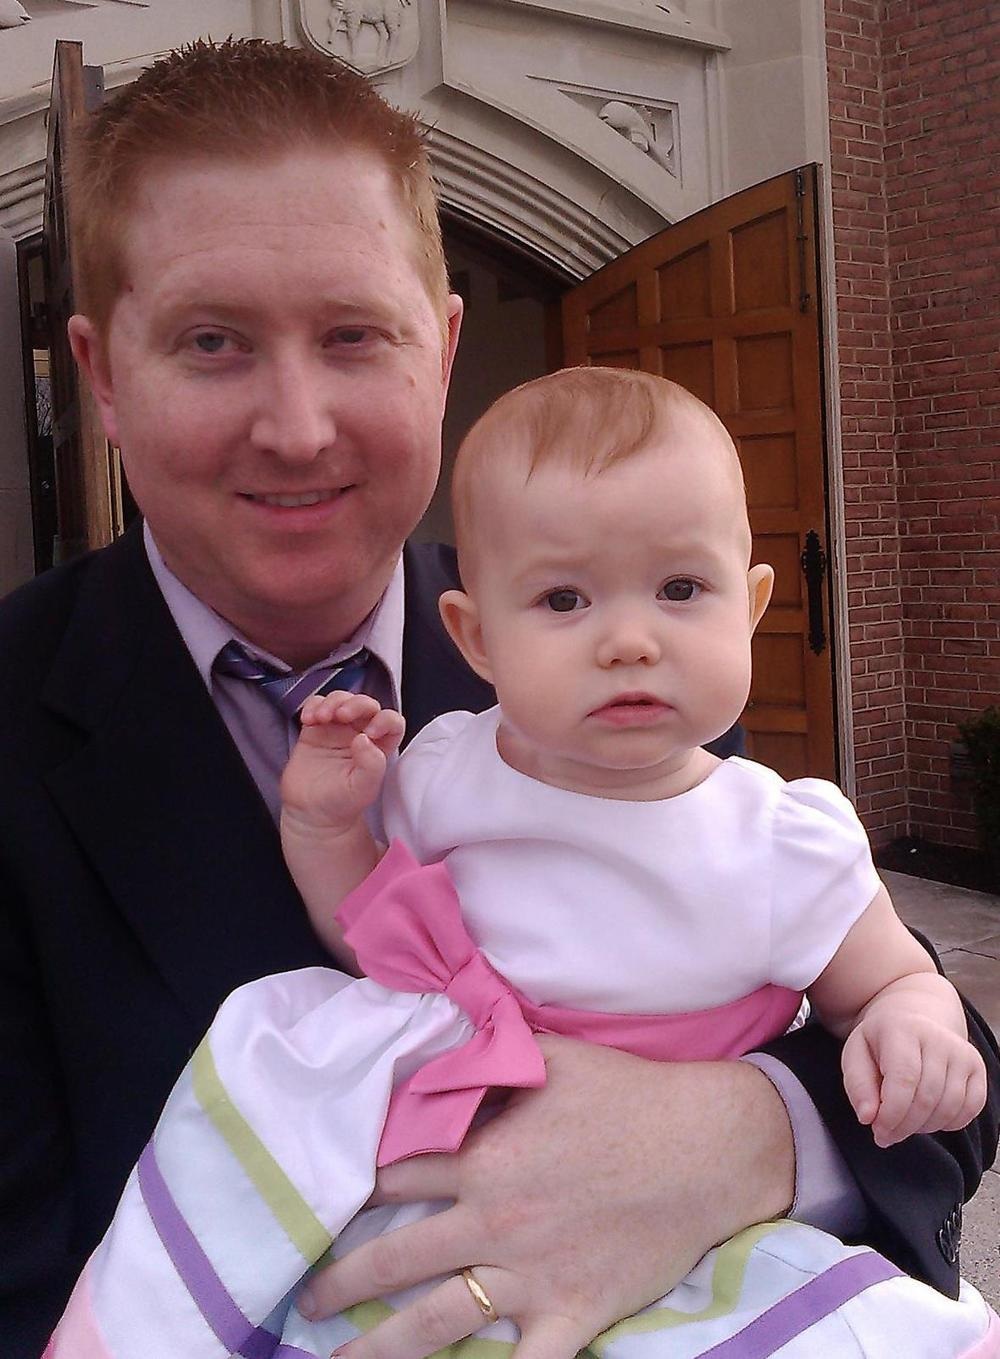 With my daughter, Amelia (then 12 months old), outside the Church of Our Savior (Episcopal), Silver Spring, Maryland, Easter Day, 2013